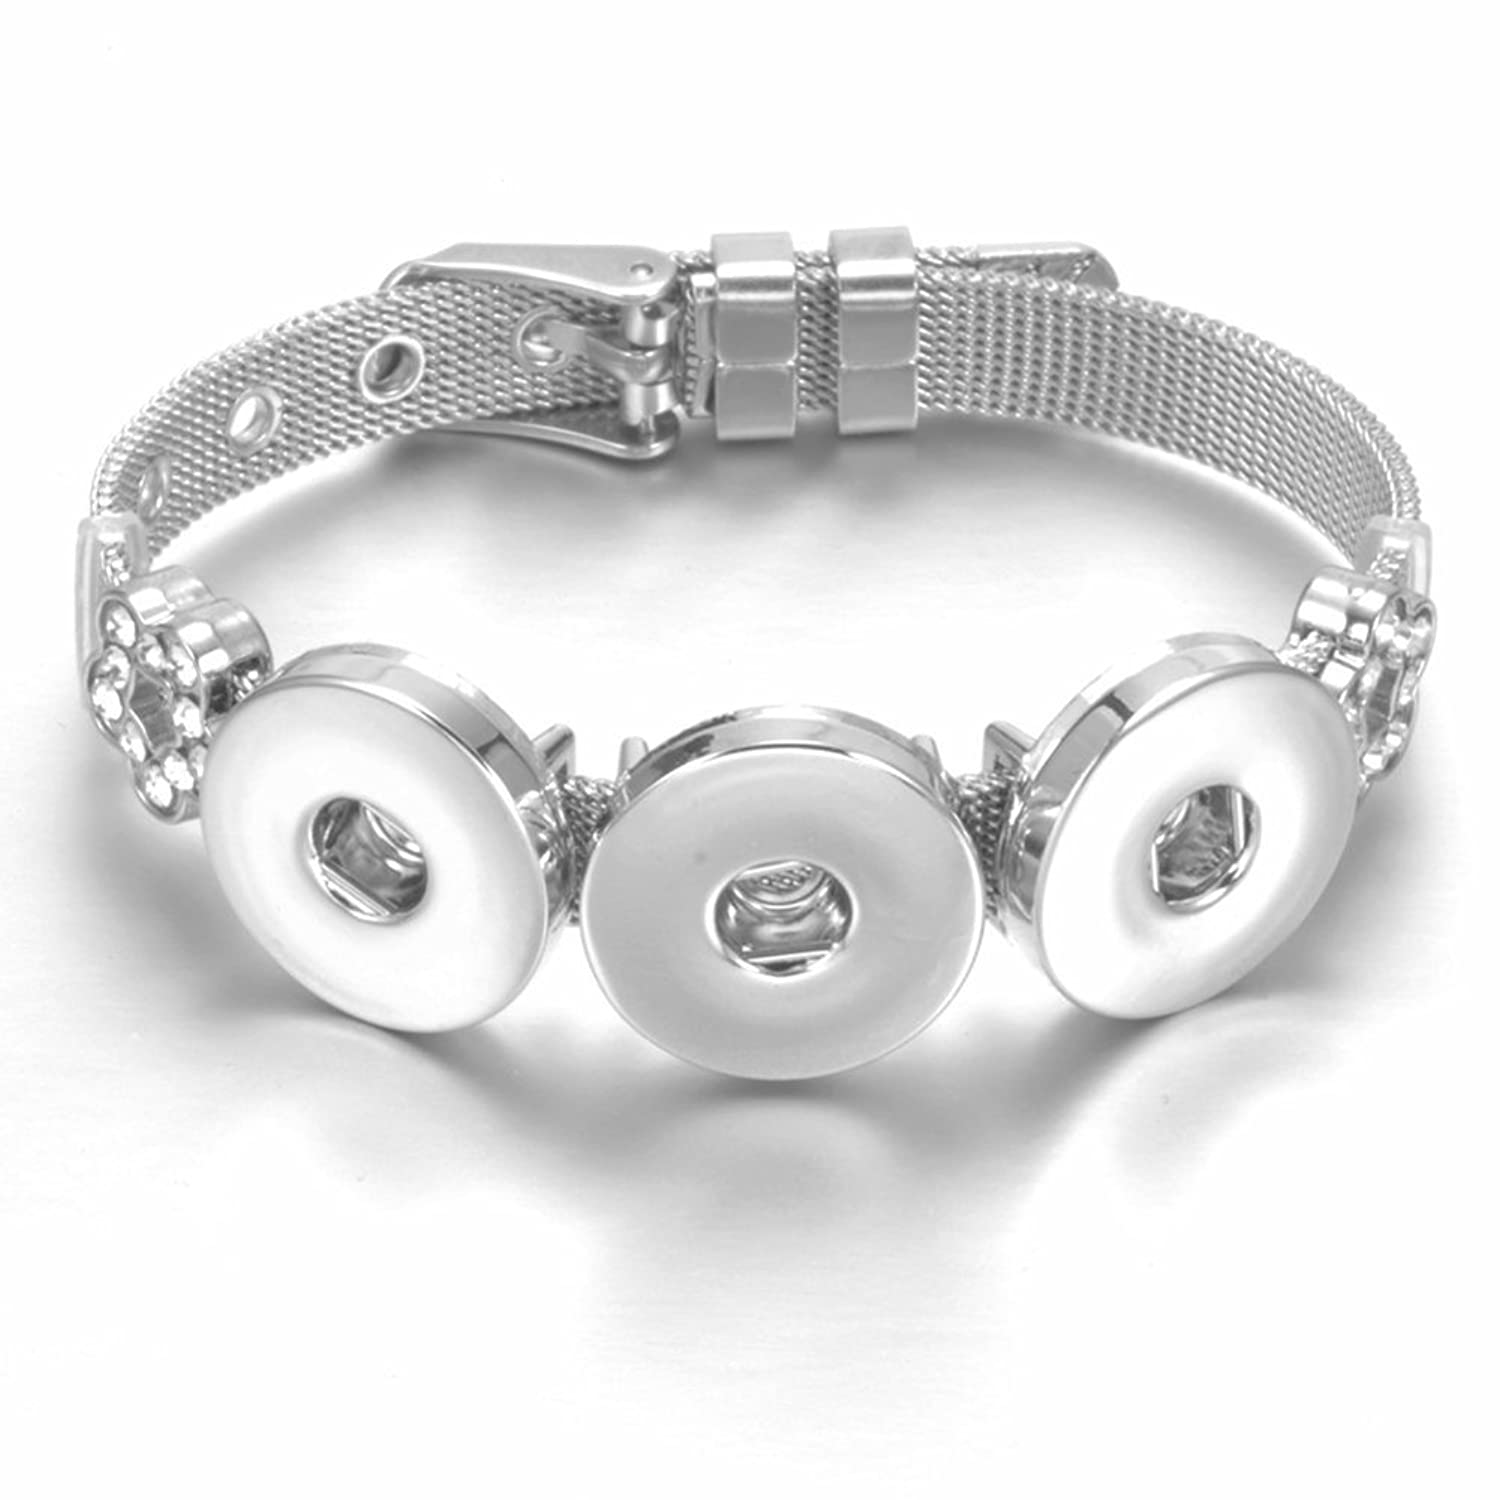 Stainless Steel x3 Snaps Flower Charms Bracelet 20mm For 18mm Snap Button Snap Jewelry SZ0452i